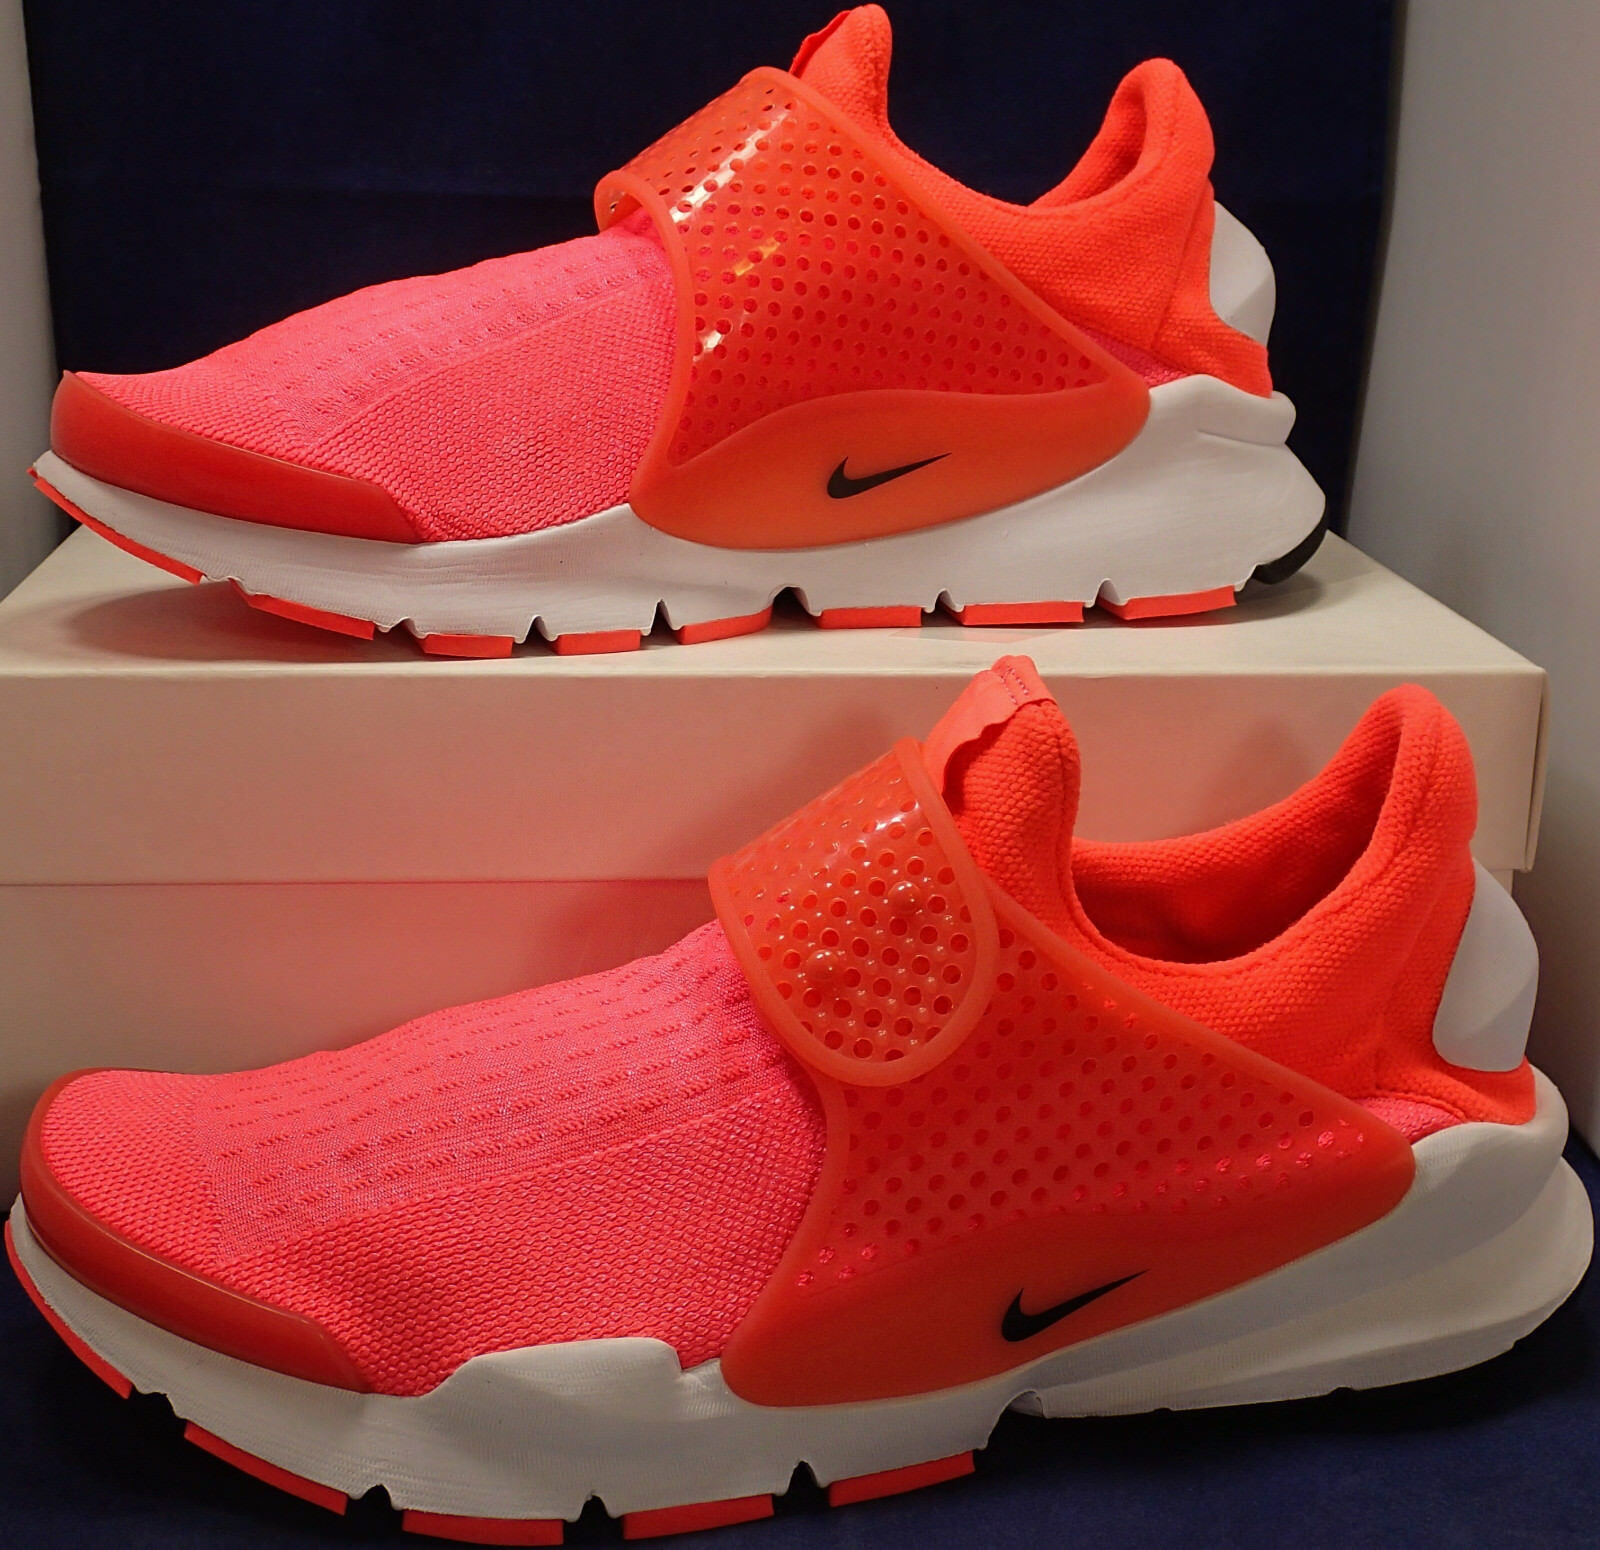 Womens Nike Sock Dart iD White Bright Crimson SZ 12 // Mens SZ 10.5 (880958-991)